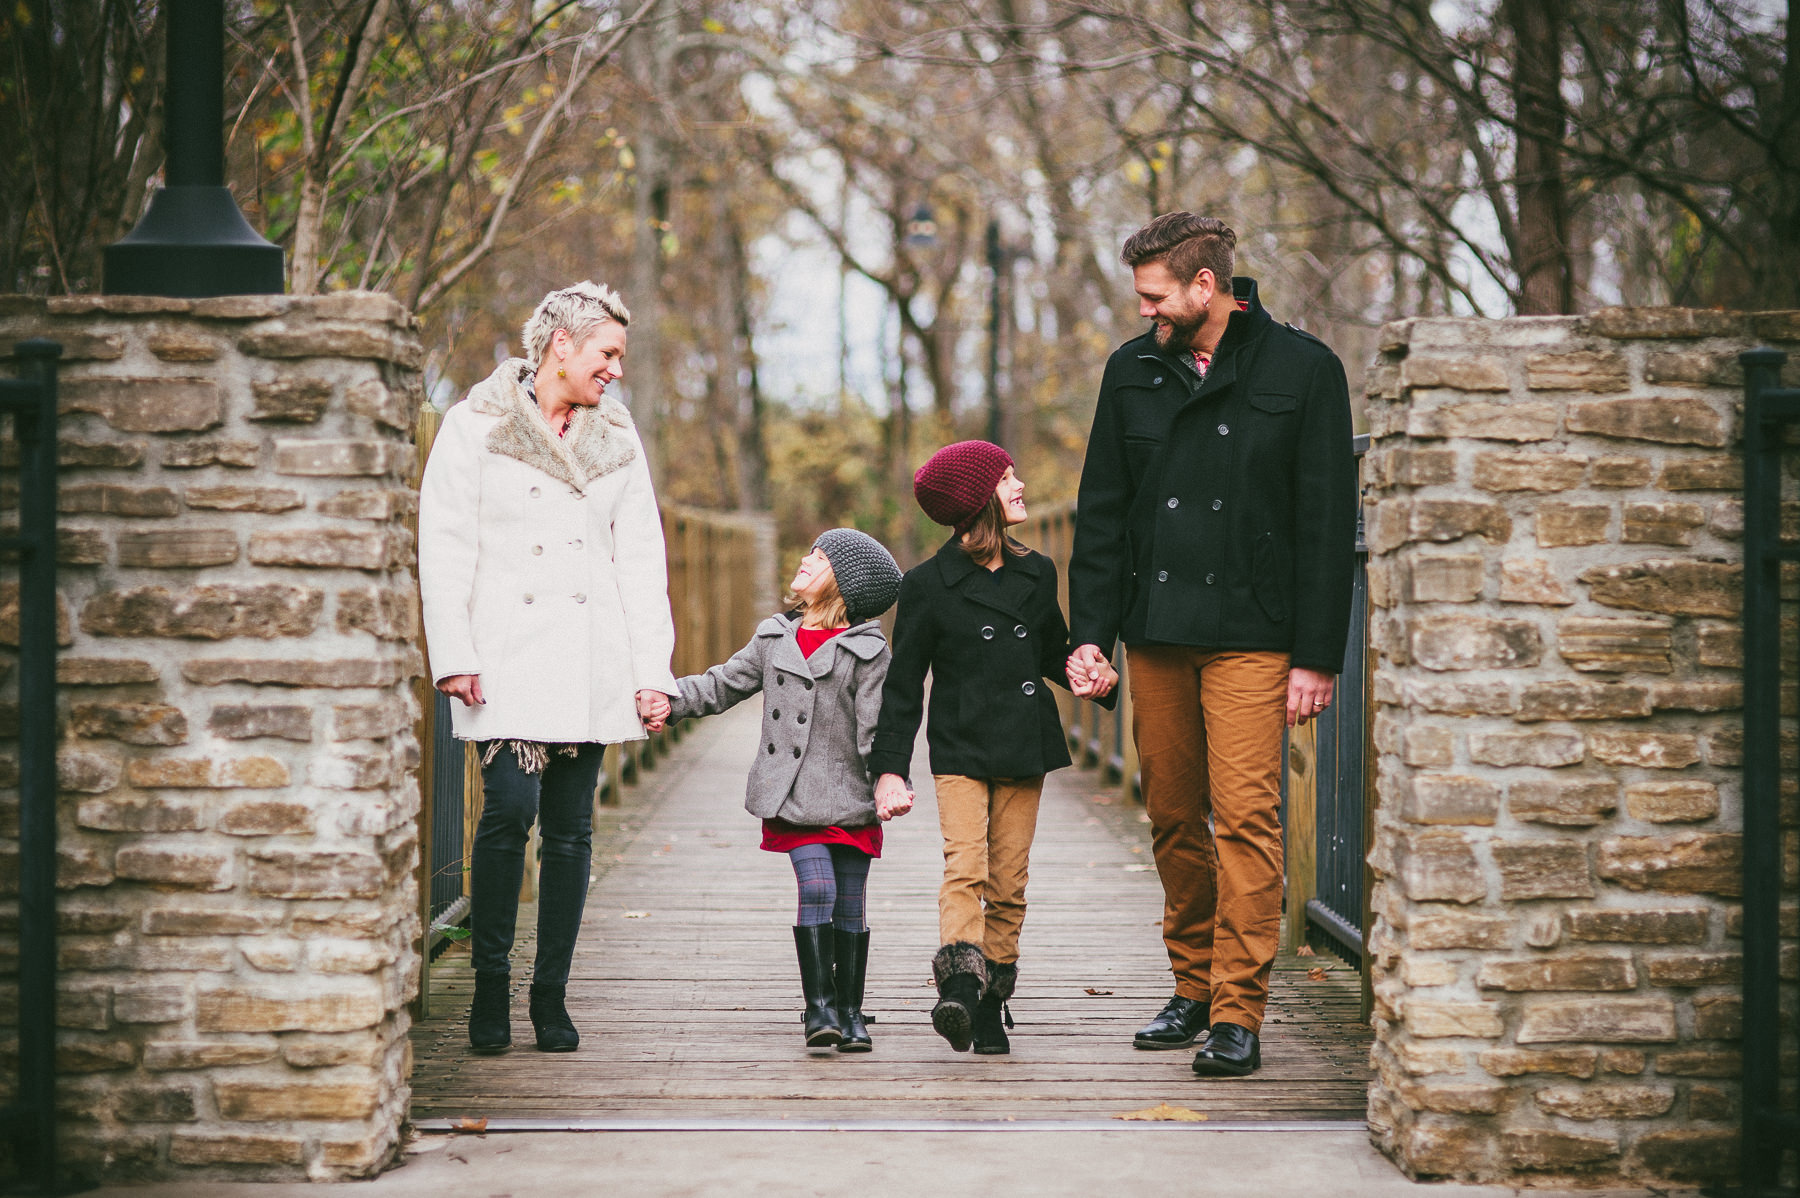 breighton-and-basette-photography-copyrighted-image-blog-betty-chad-and-company-family-shoot-003.jpg